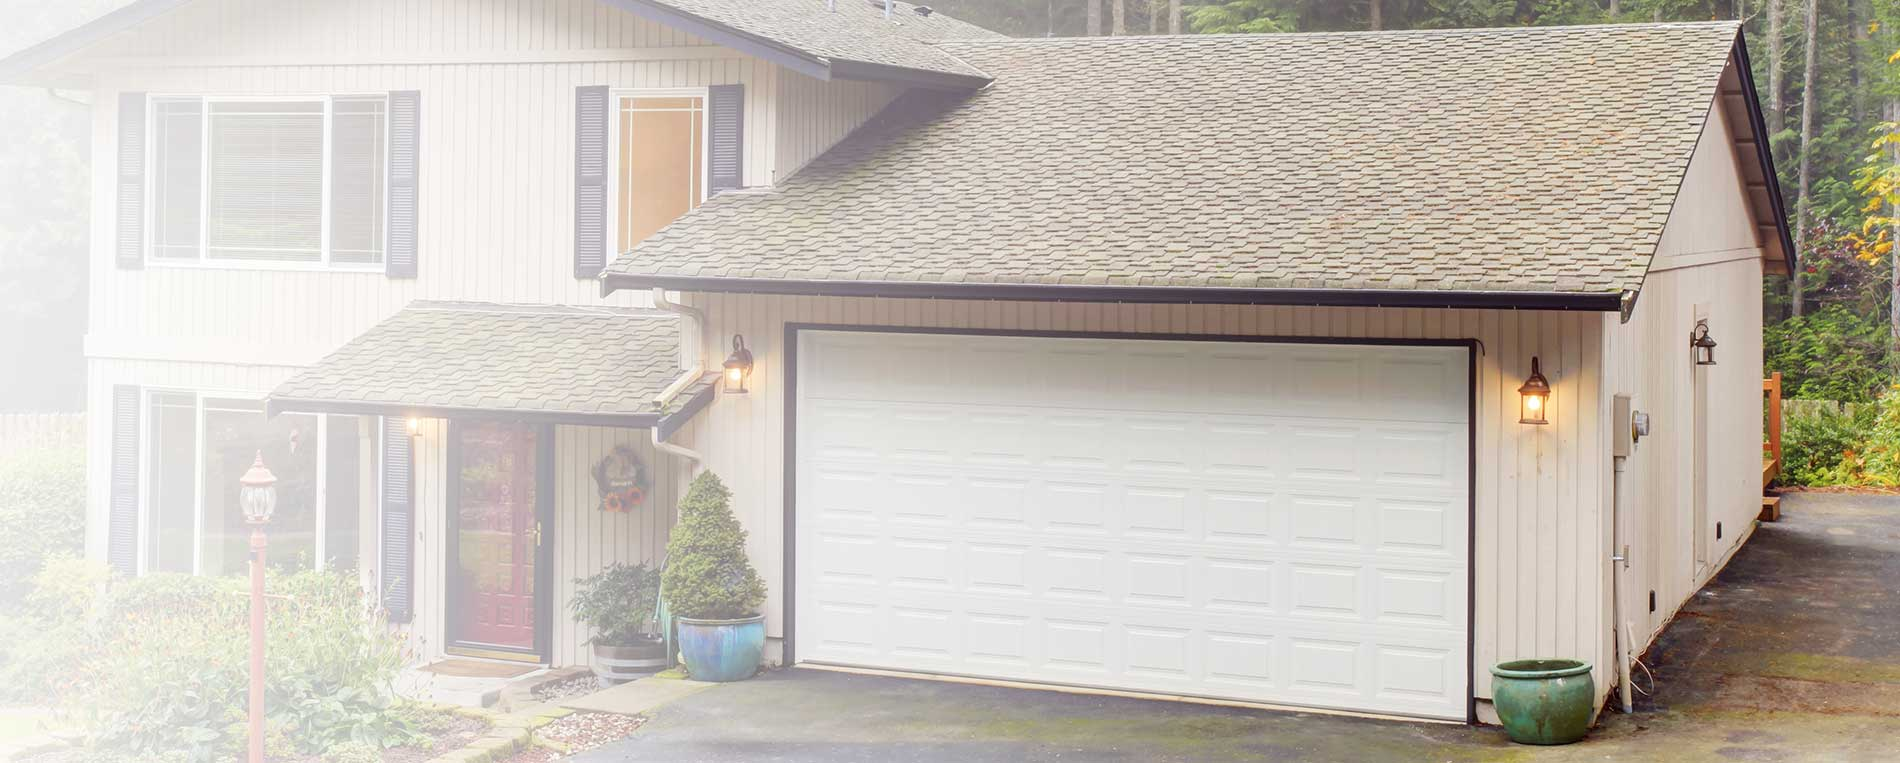 Garage Door Repair Danbury CT  Top Quality Repairs  Installations